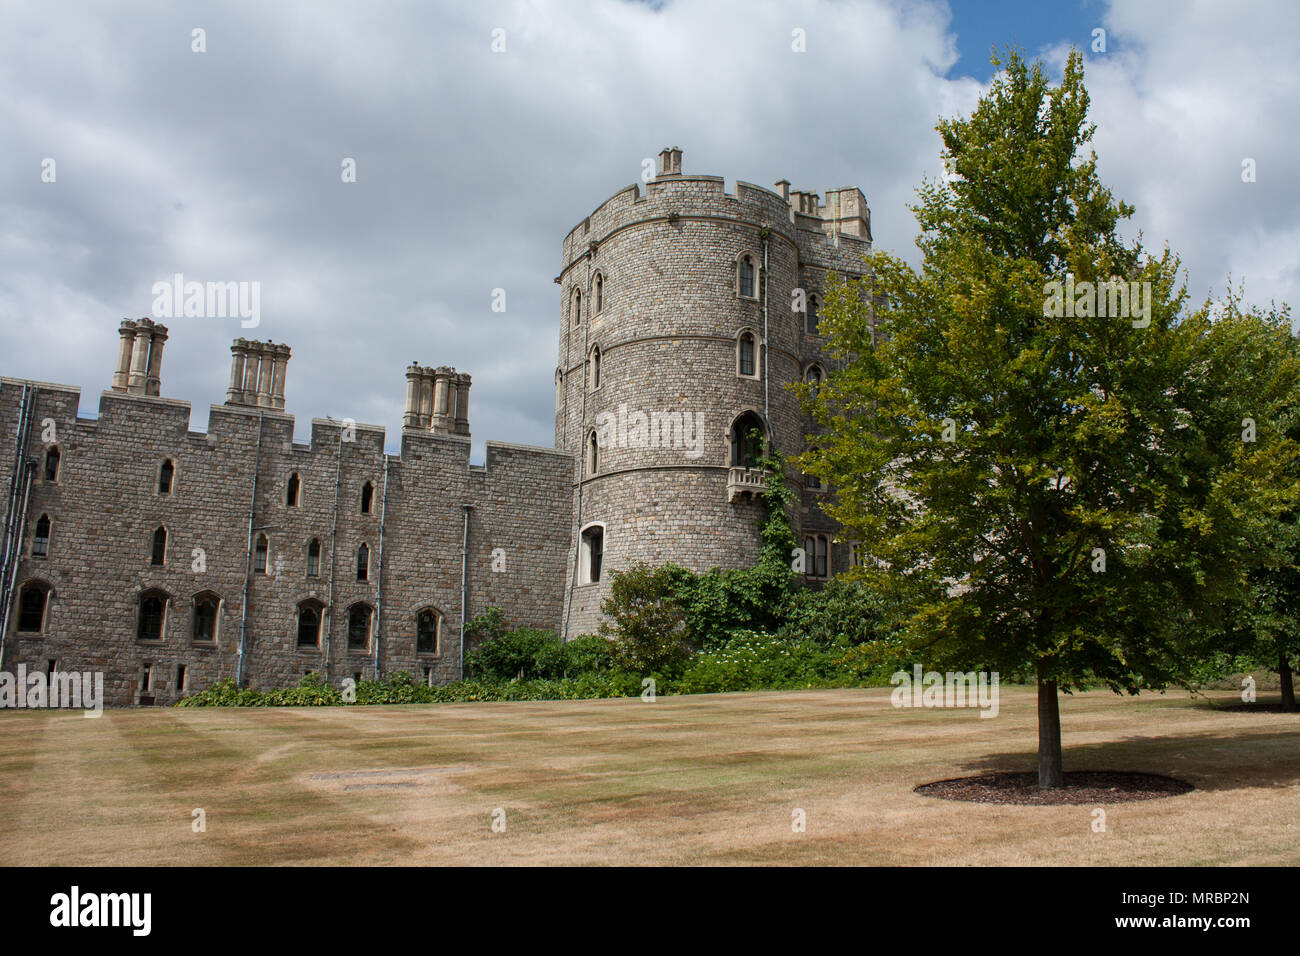 Outside walls by the Henry VIII gateway of Windsor castle, residence of the british royal family in England, UK. - Stock Image